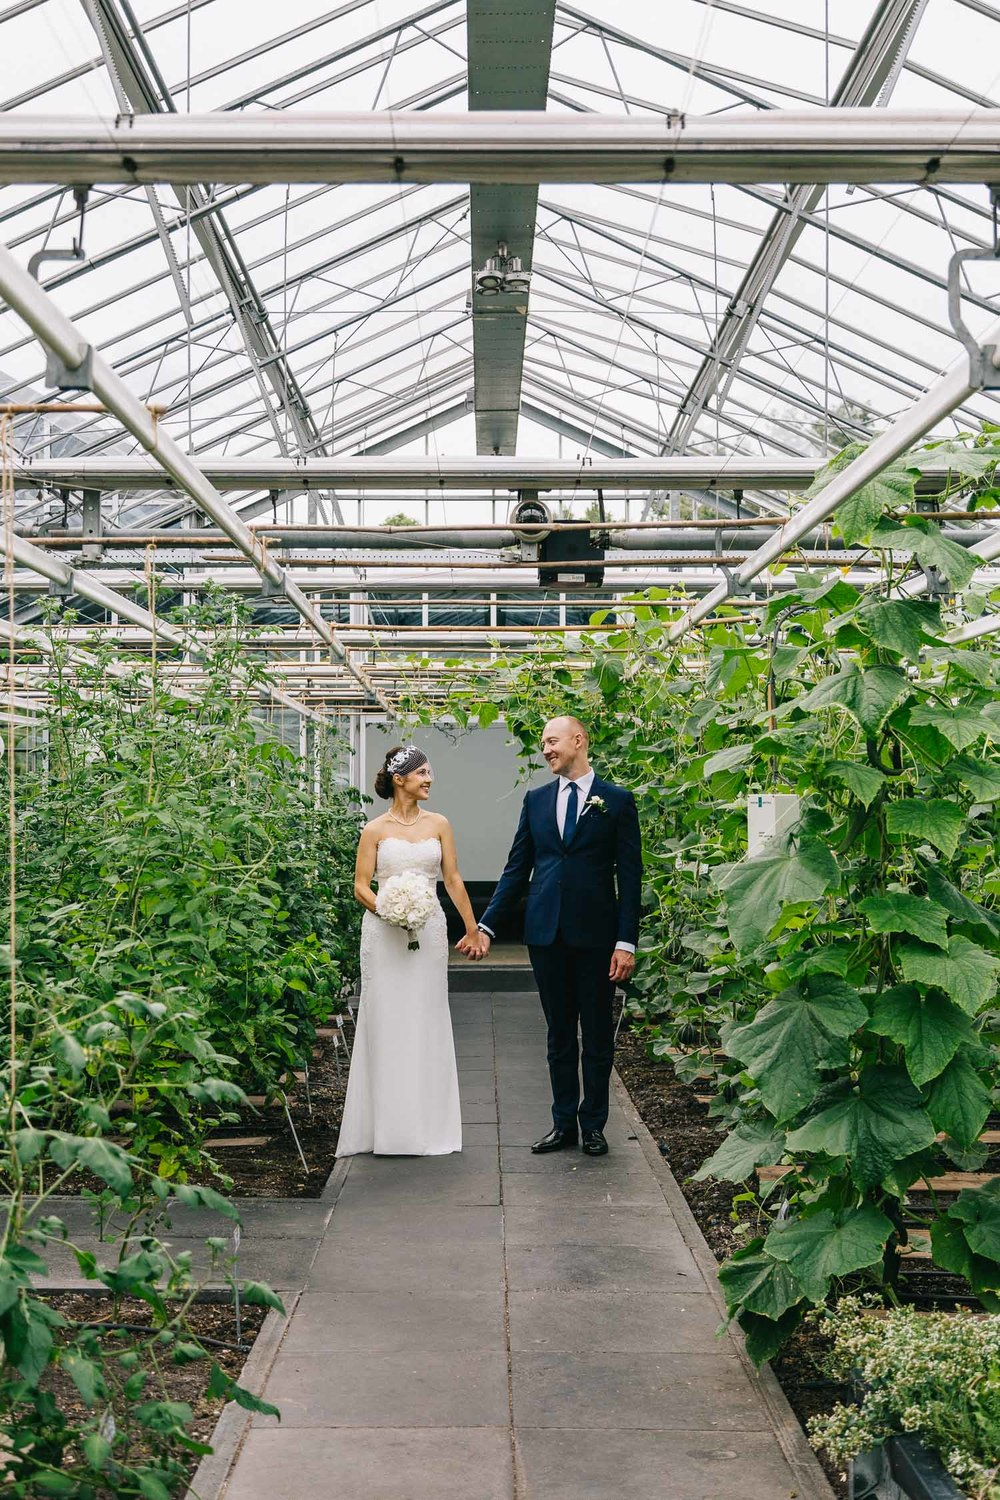 Urban-green-greenhouse-wedding-Ilina-and-james-restaurant-De-Kas-Amsterdam-by-On-a-hazy-morning-81.jpg